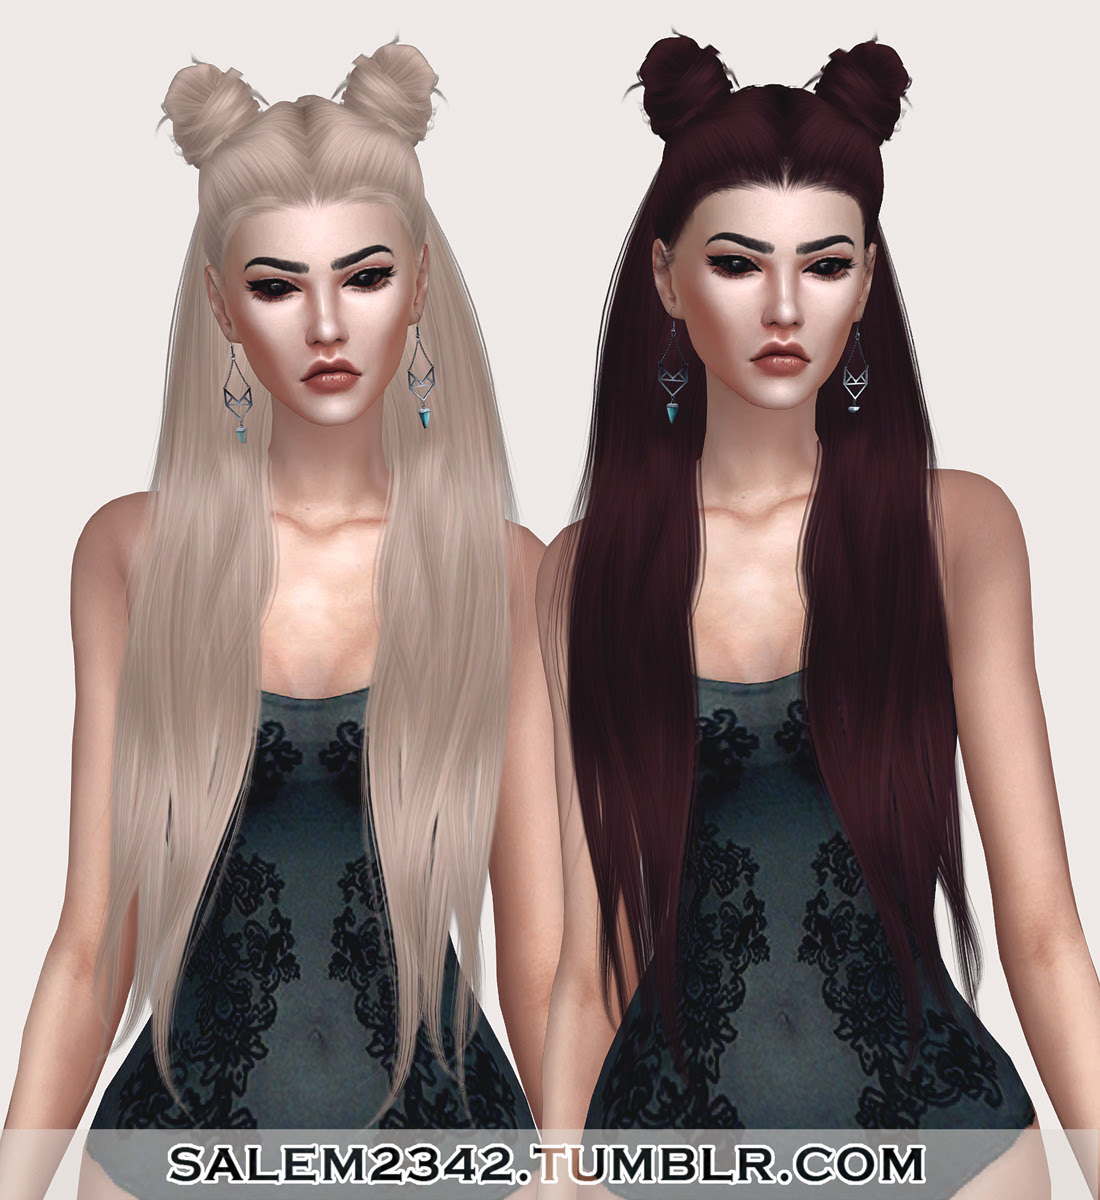 LeahLillith Little Piece Hair Retexture (TS4)• standalone • 30 swatches • MESH IS NOT INCLUDED -> download mesh (need!) • textures by me DOWNLOAD